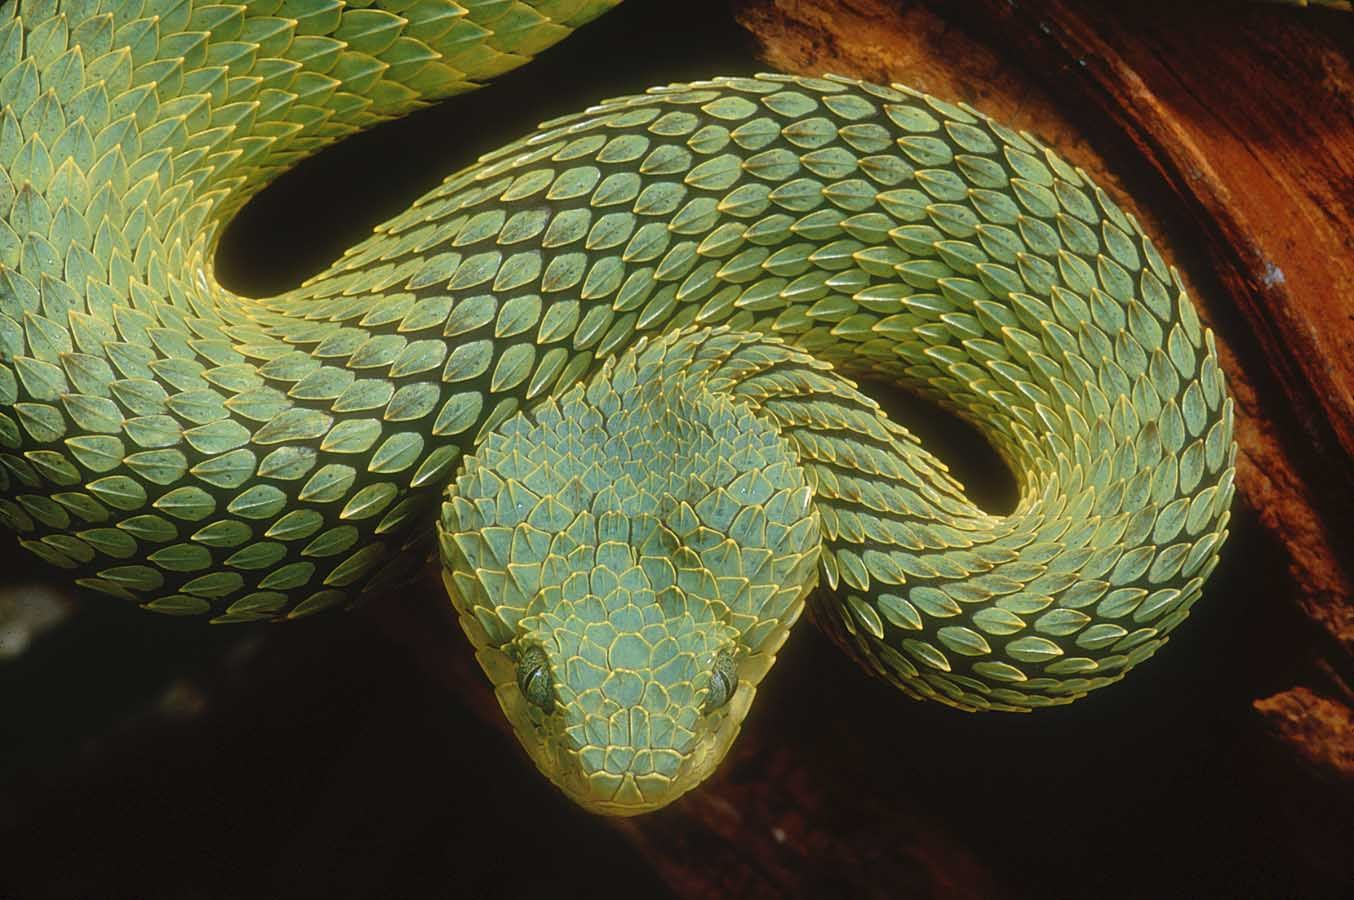 Variable Venom — Why Are Some Snakes Deadlier Than Others?